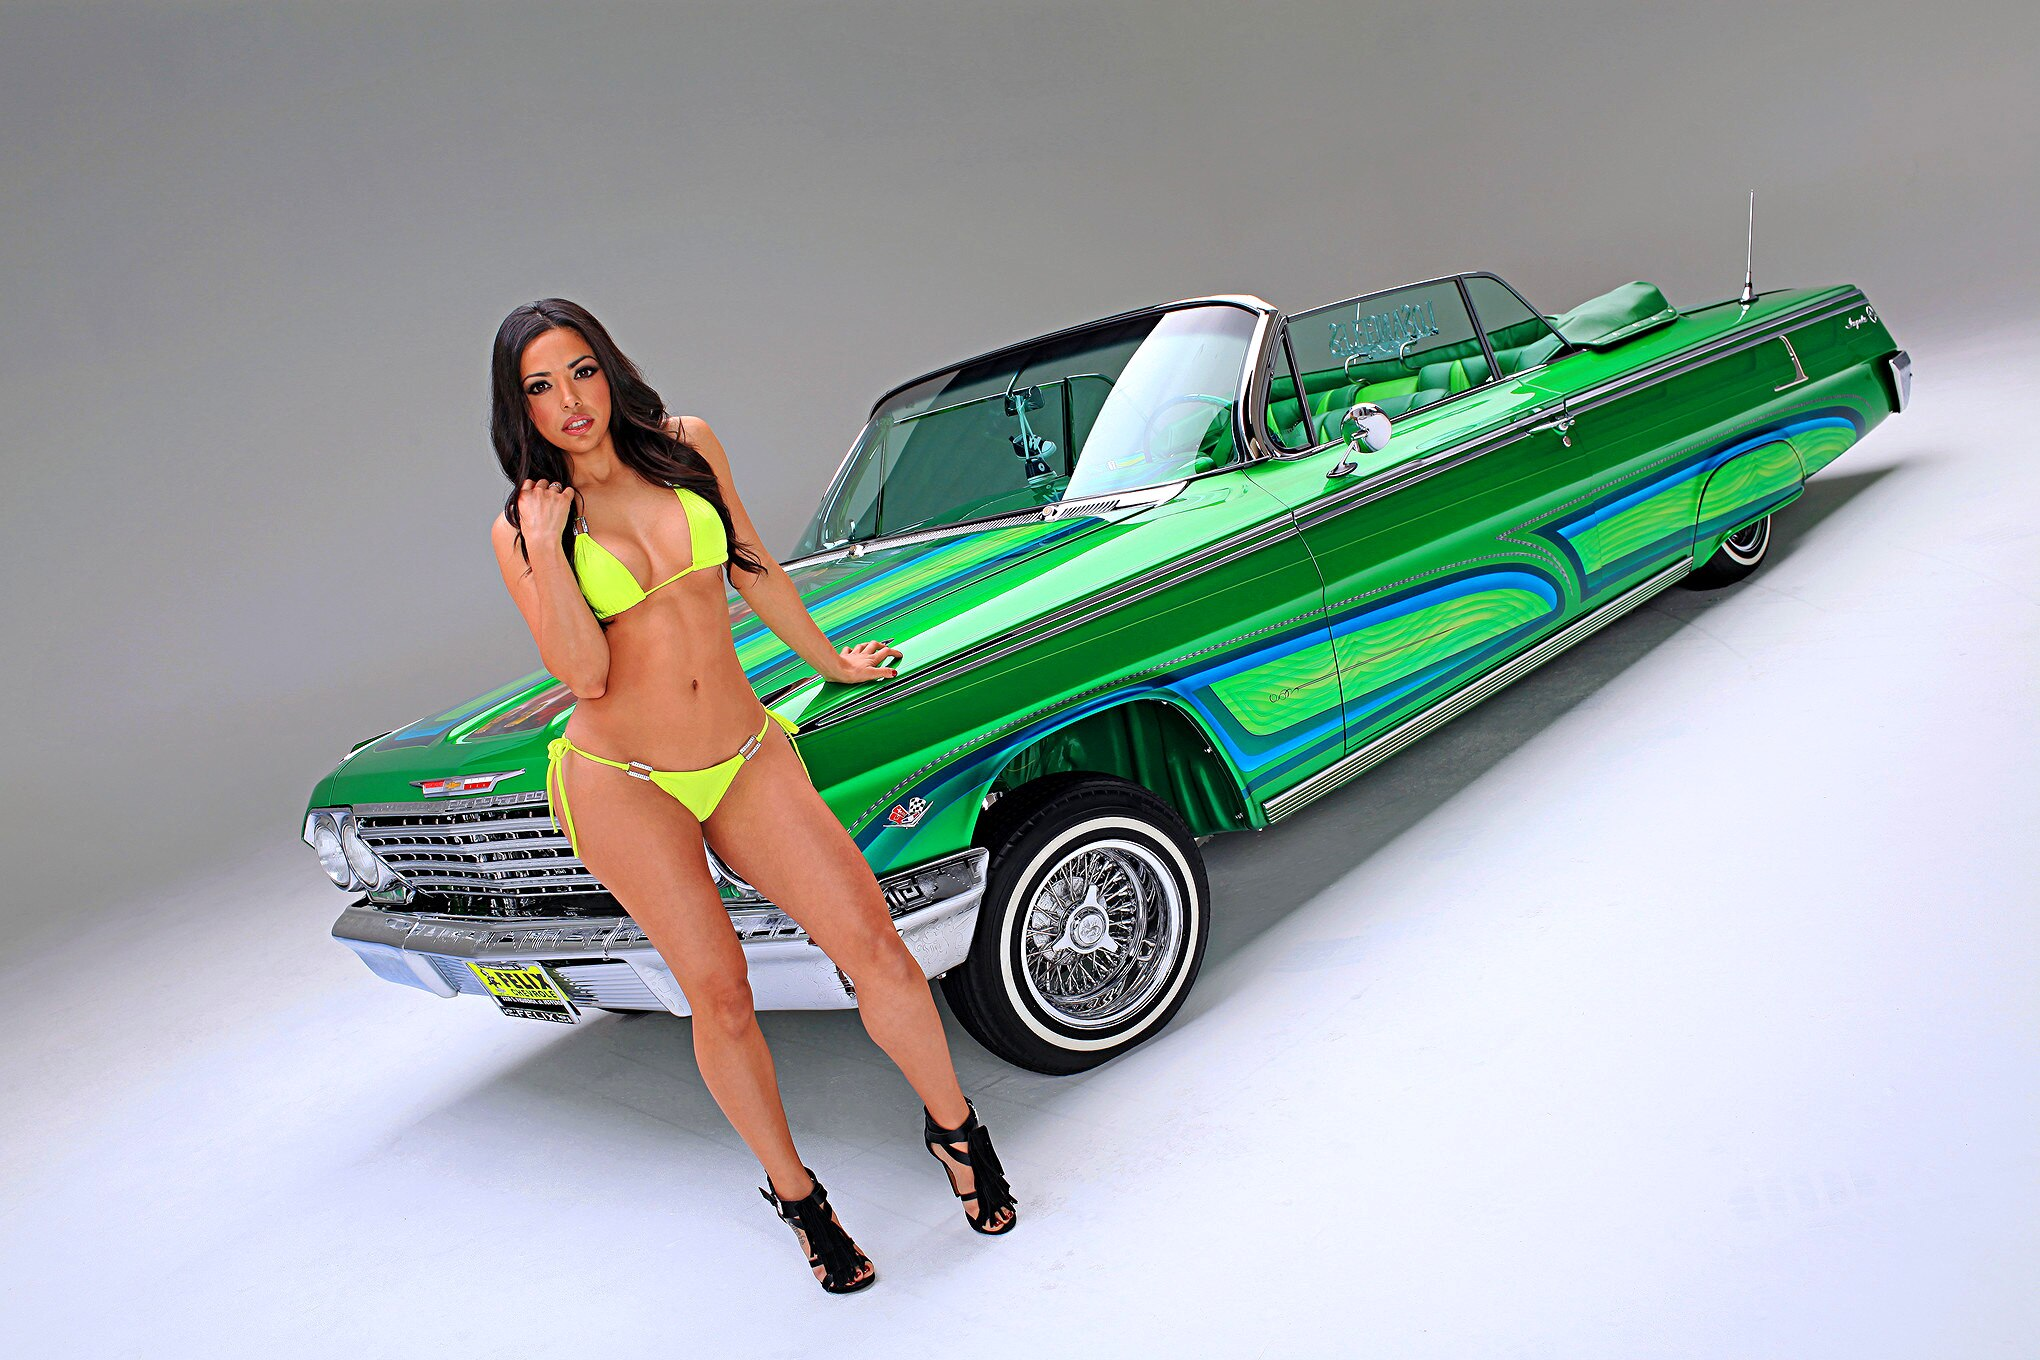 Lowriders and naked girls